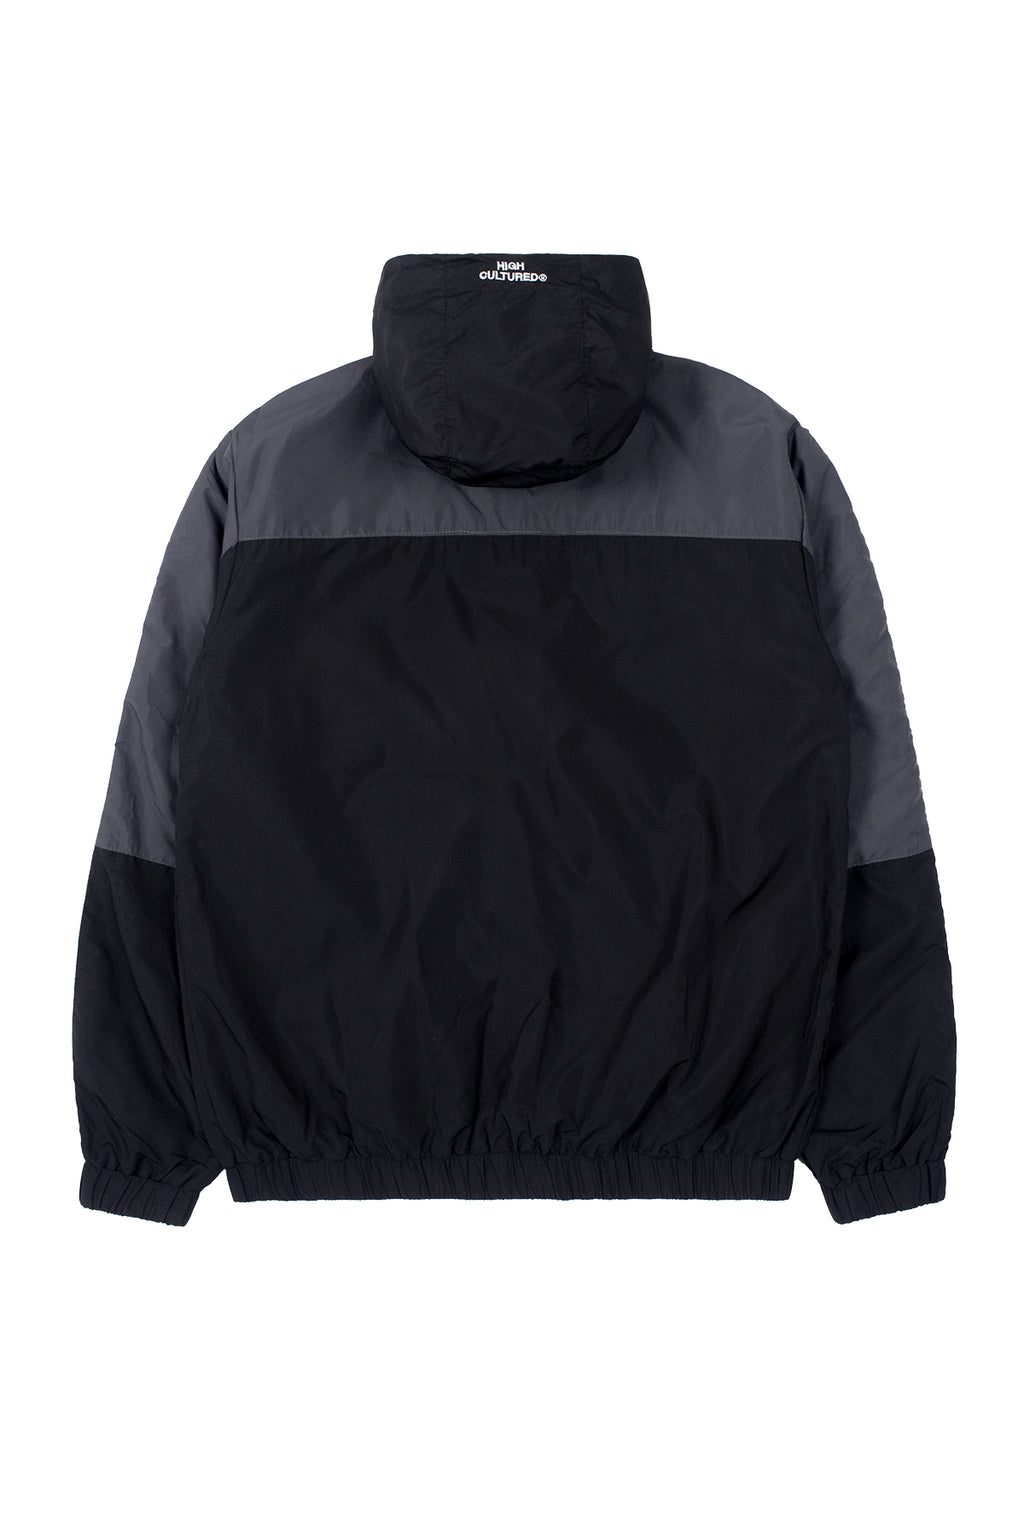 HIGH CULTURED PANNEL ATHLETICS WINDBREAKER | BLACK - 91